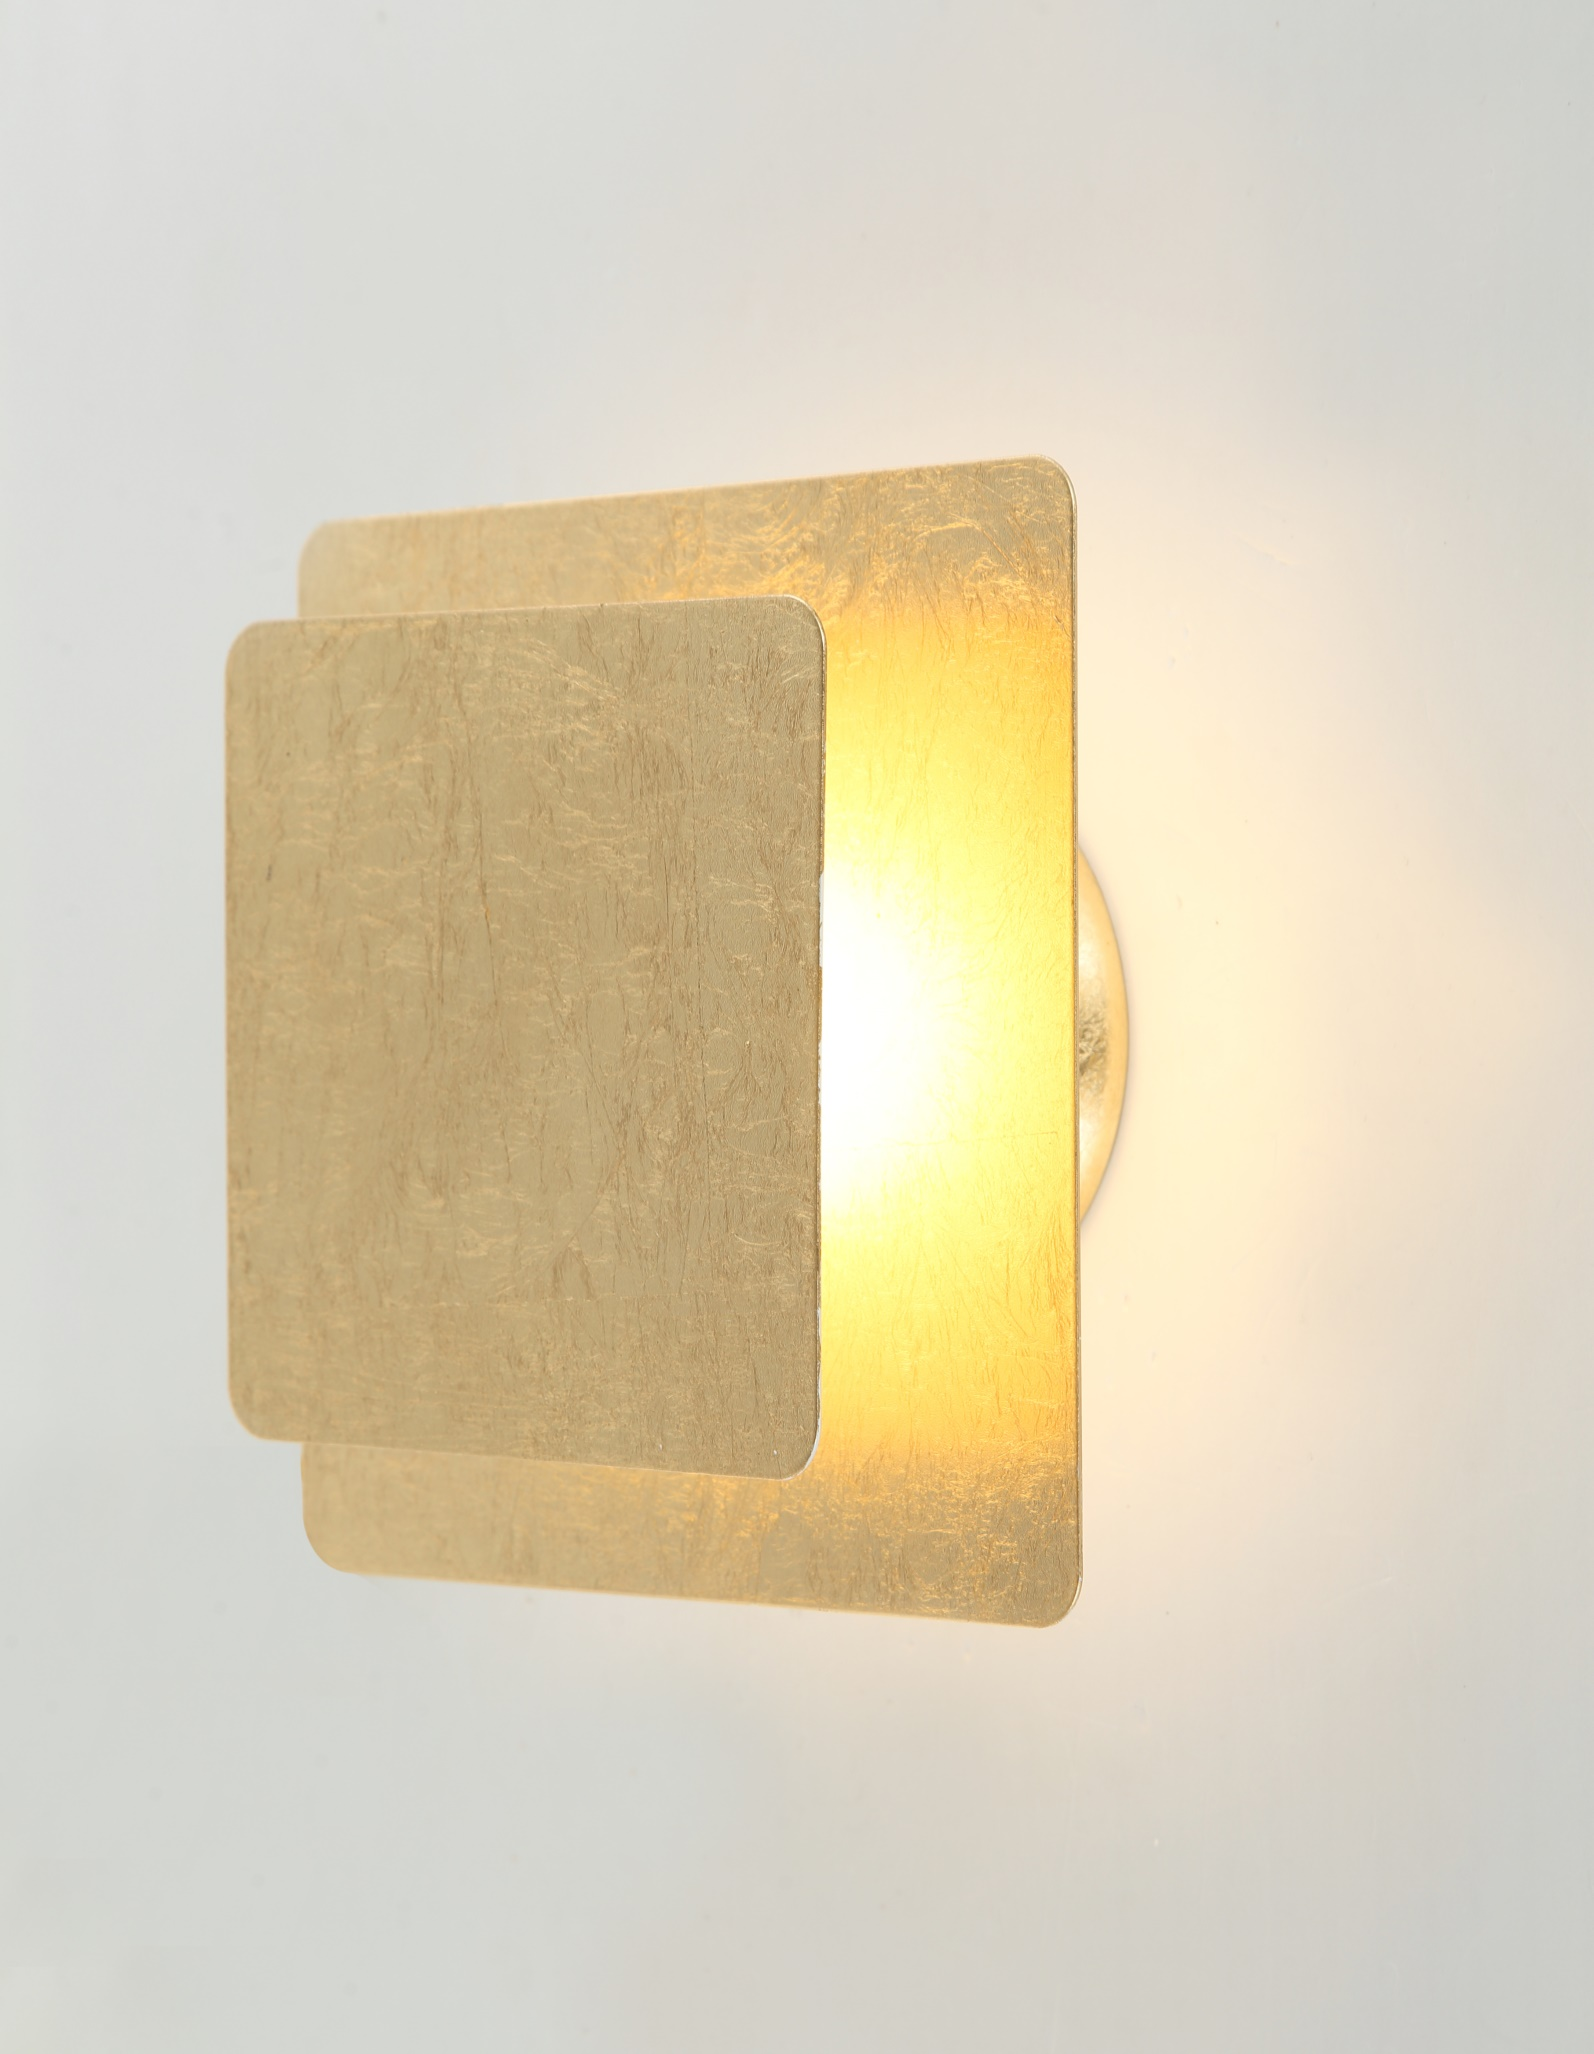 best wall sconce 67122sl2d for wholesale for bedroom-1